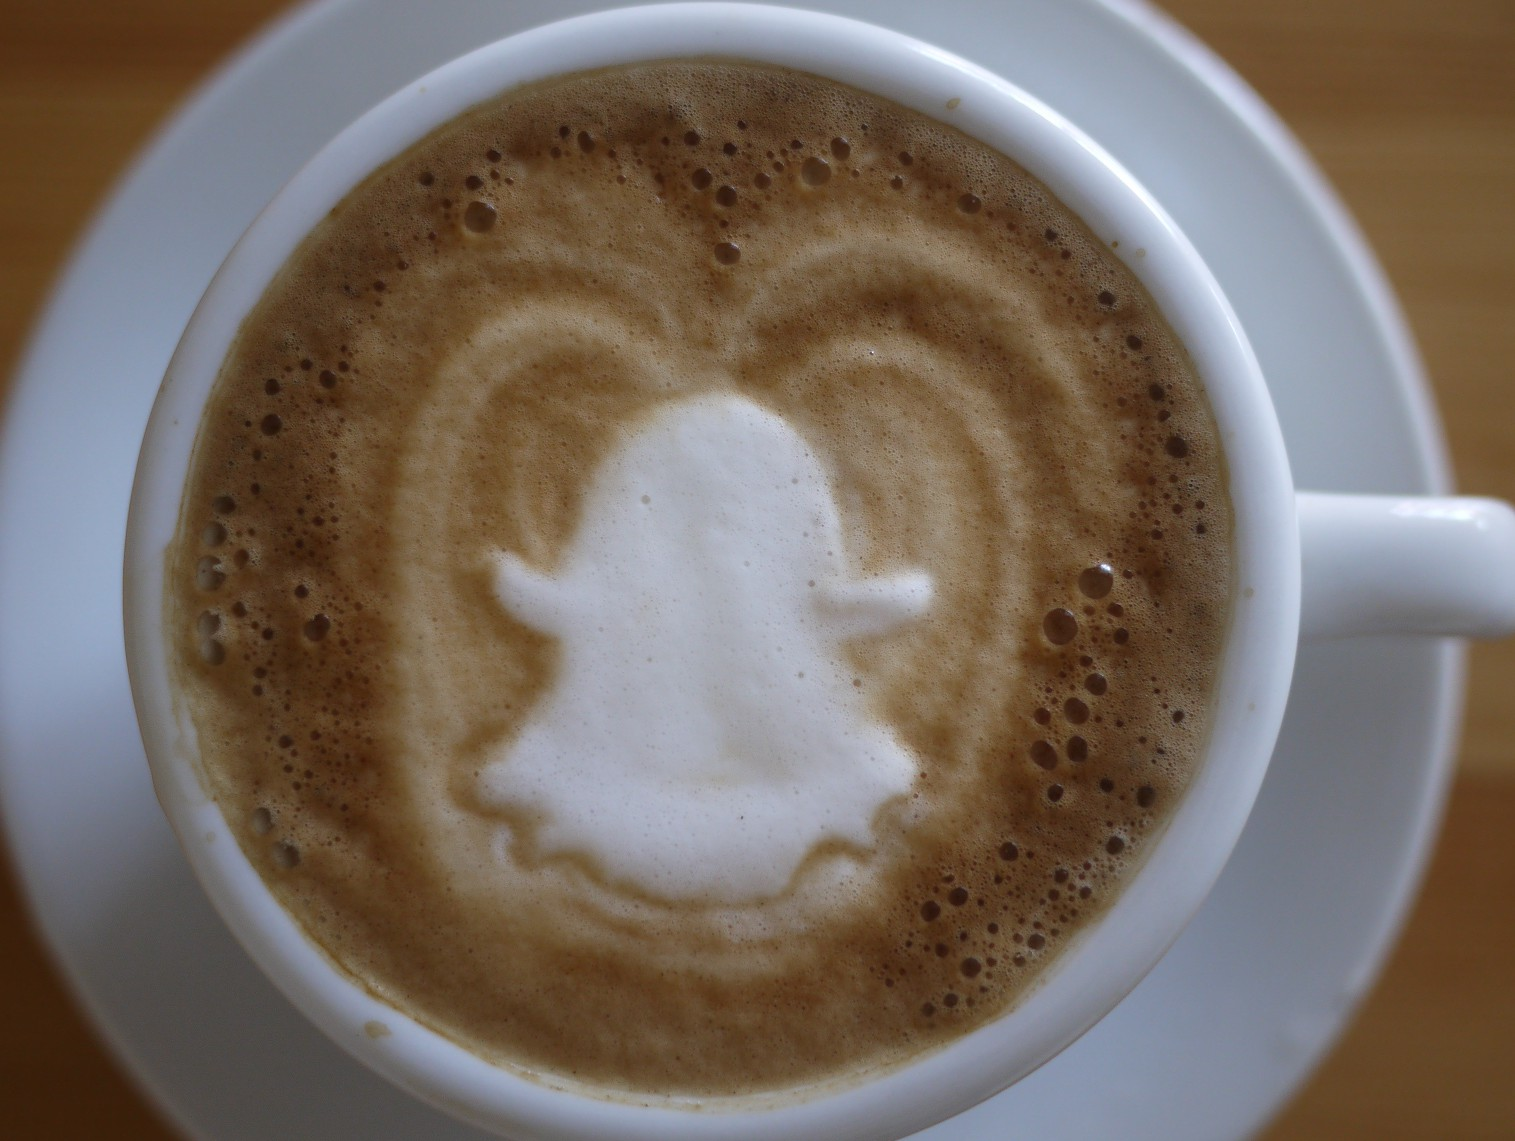 Ephemeral latte art in the shape of the Snapchat logo. Disappears as soon as the first sip is taken.